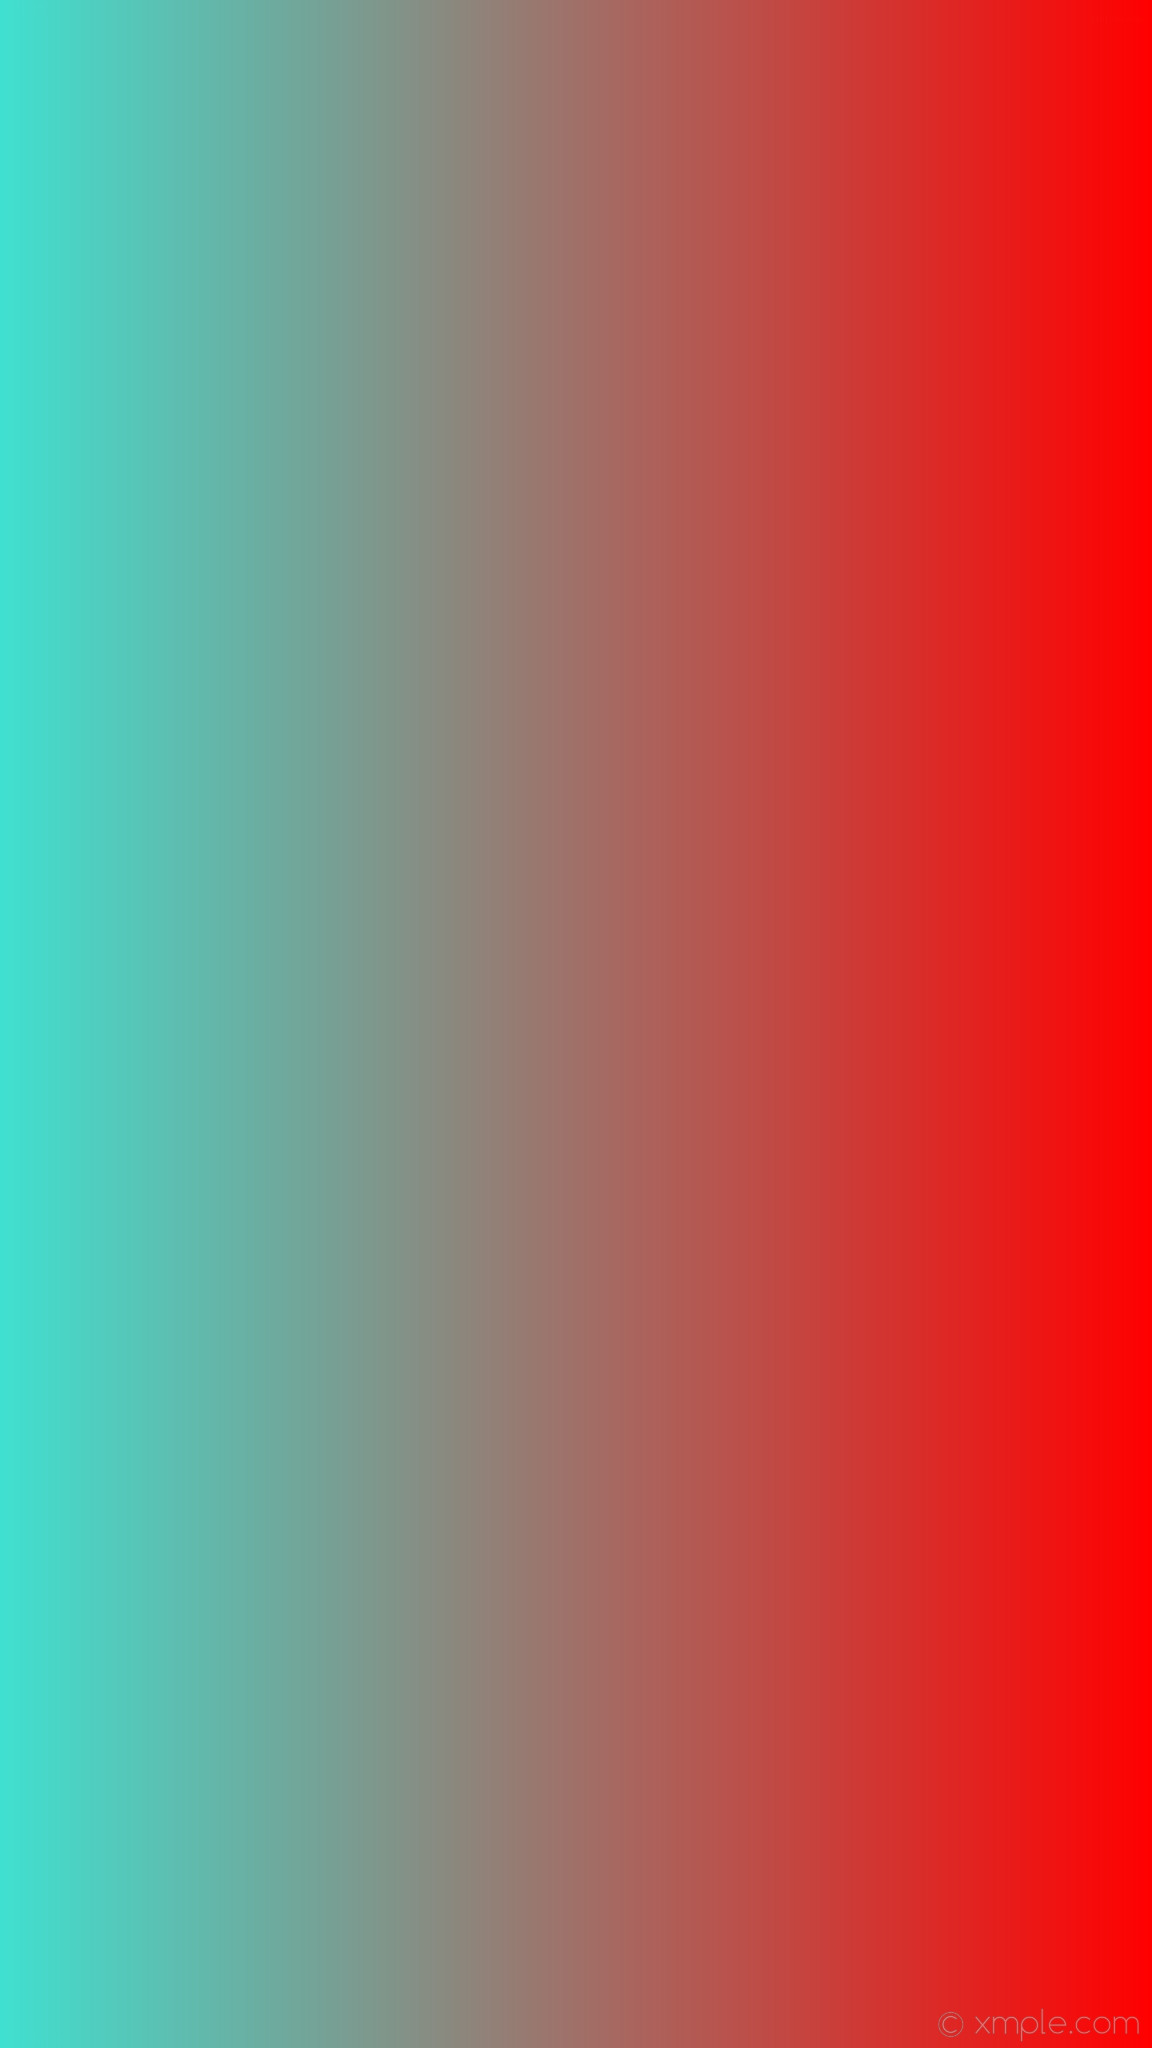 1152x2048 wallpaper gradient linear red blue turquoise #ff0000 #40e0d0 0°